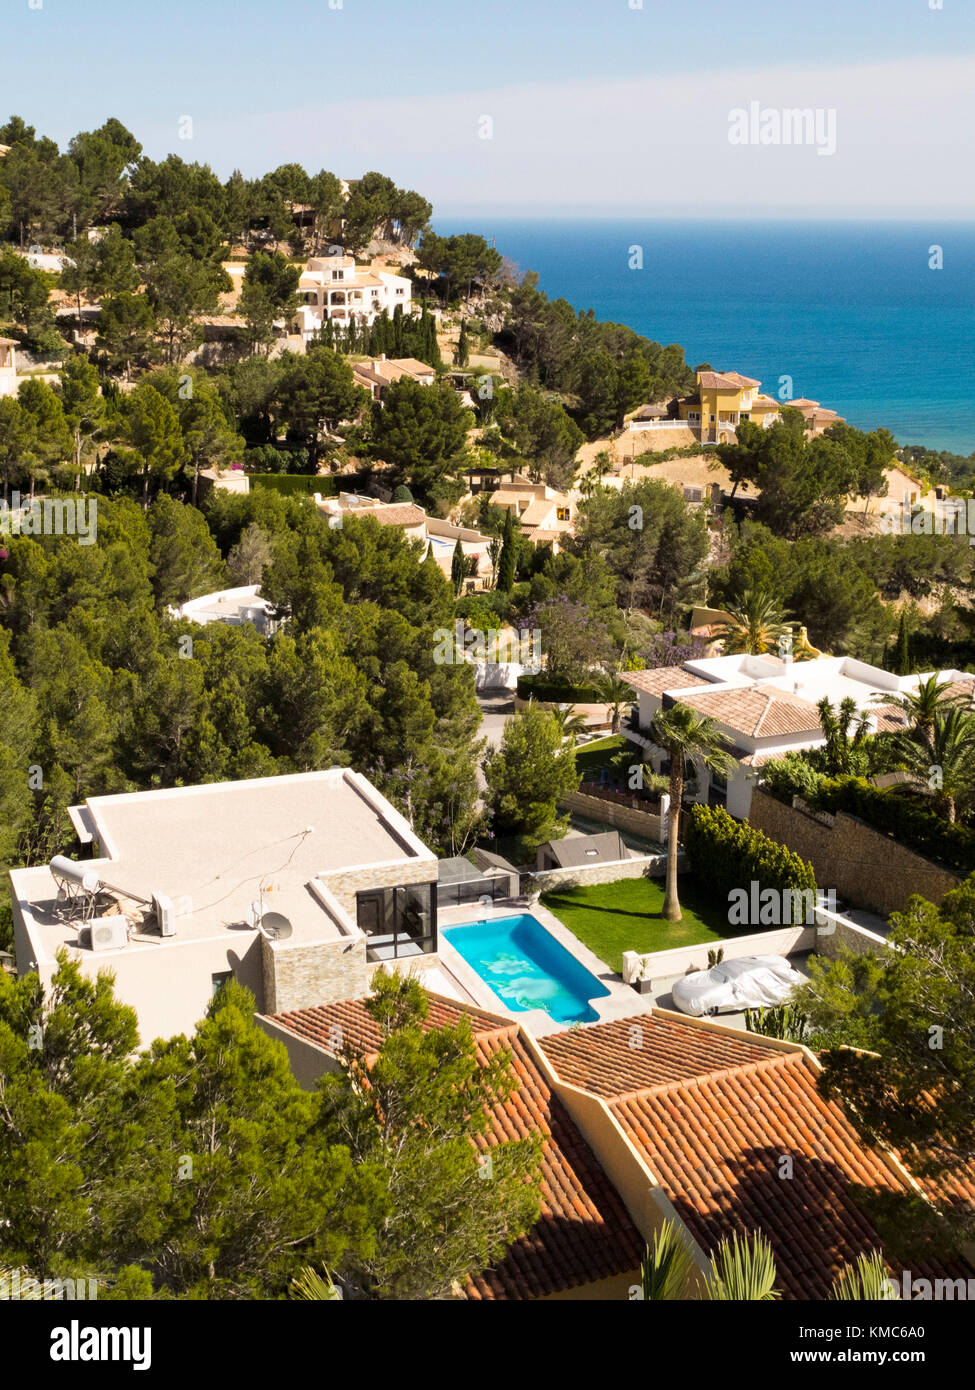 car  protected under tarp next to swimming pool in luxury villa surrounded by Mediterranean style villas in urbanization Stock Photo